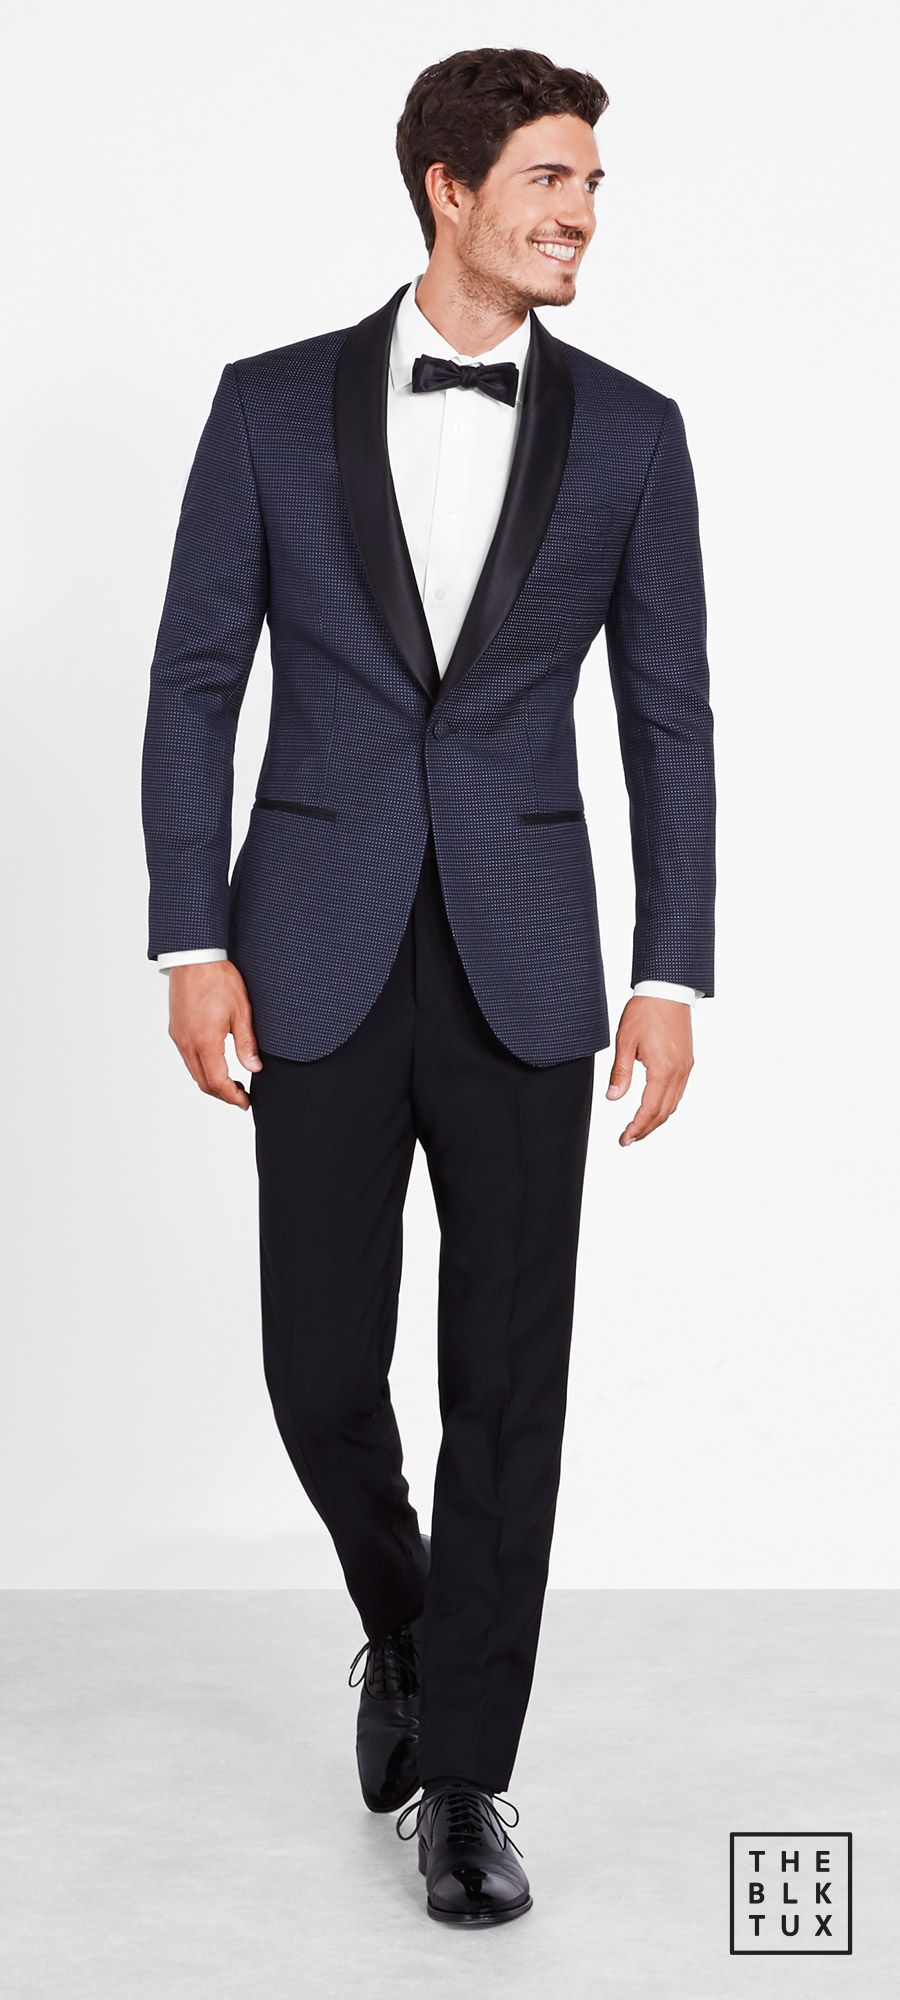 the black tux 2017 online tuxedo rental service the midnight pin dot tuxedo  groommen best man style -- Suit Up in Style, The Black Tux Way